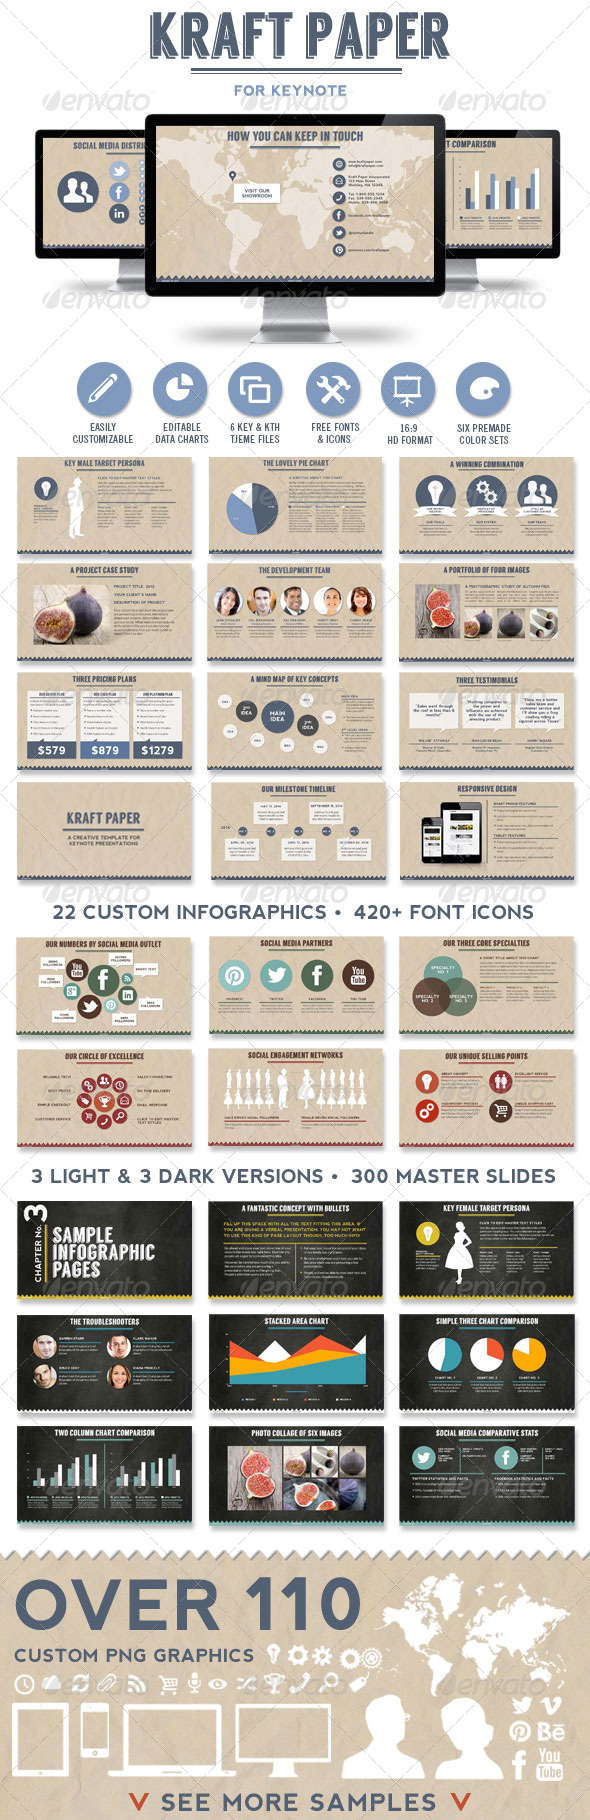 GraphicRiver Kraft Paper KeynotePresentation Template 6748850